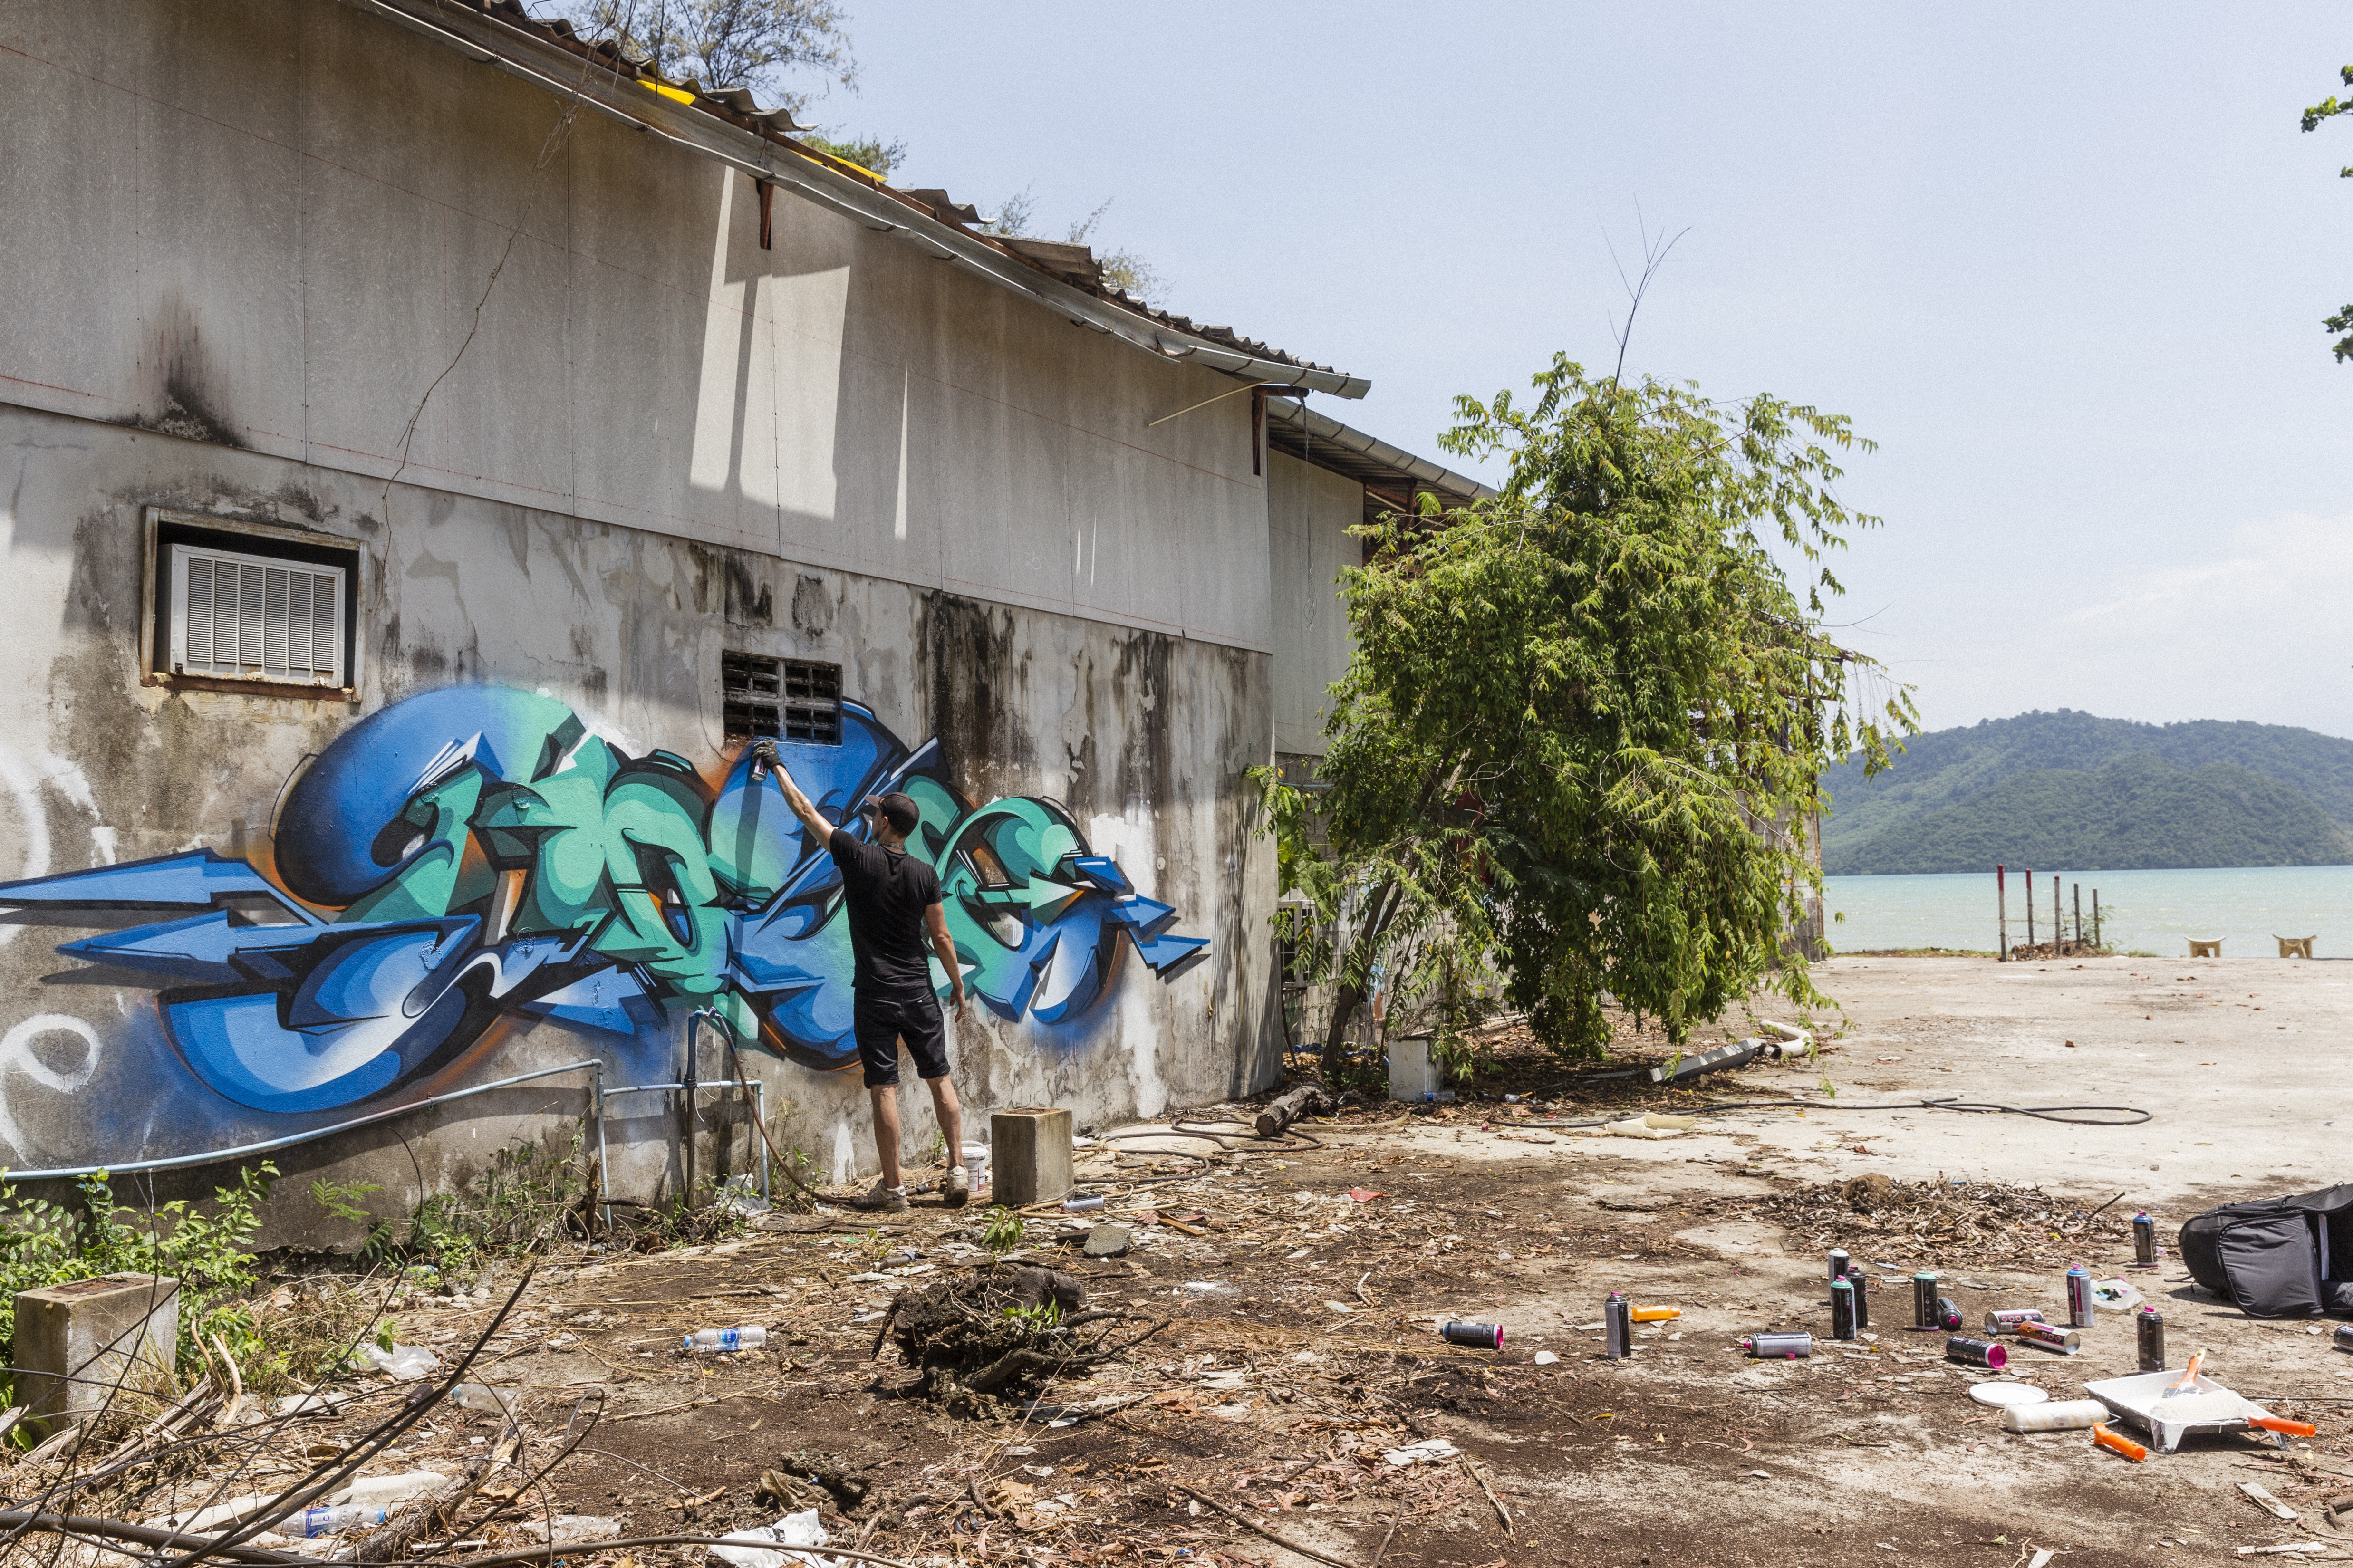 A work by Does - 201702-DOES-Ironlak-Thailand_LukeShirlaw_img_1462-smaller